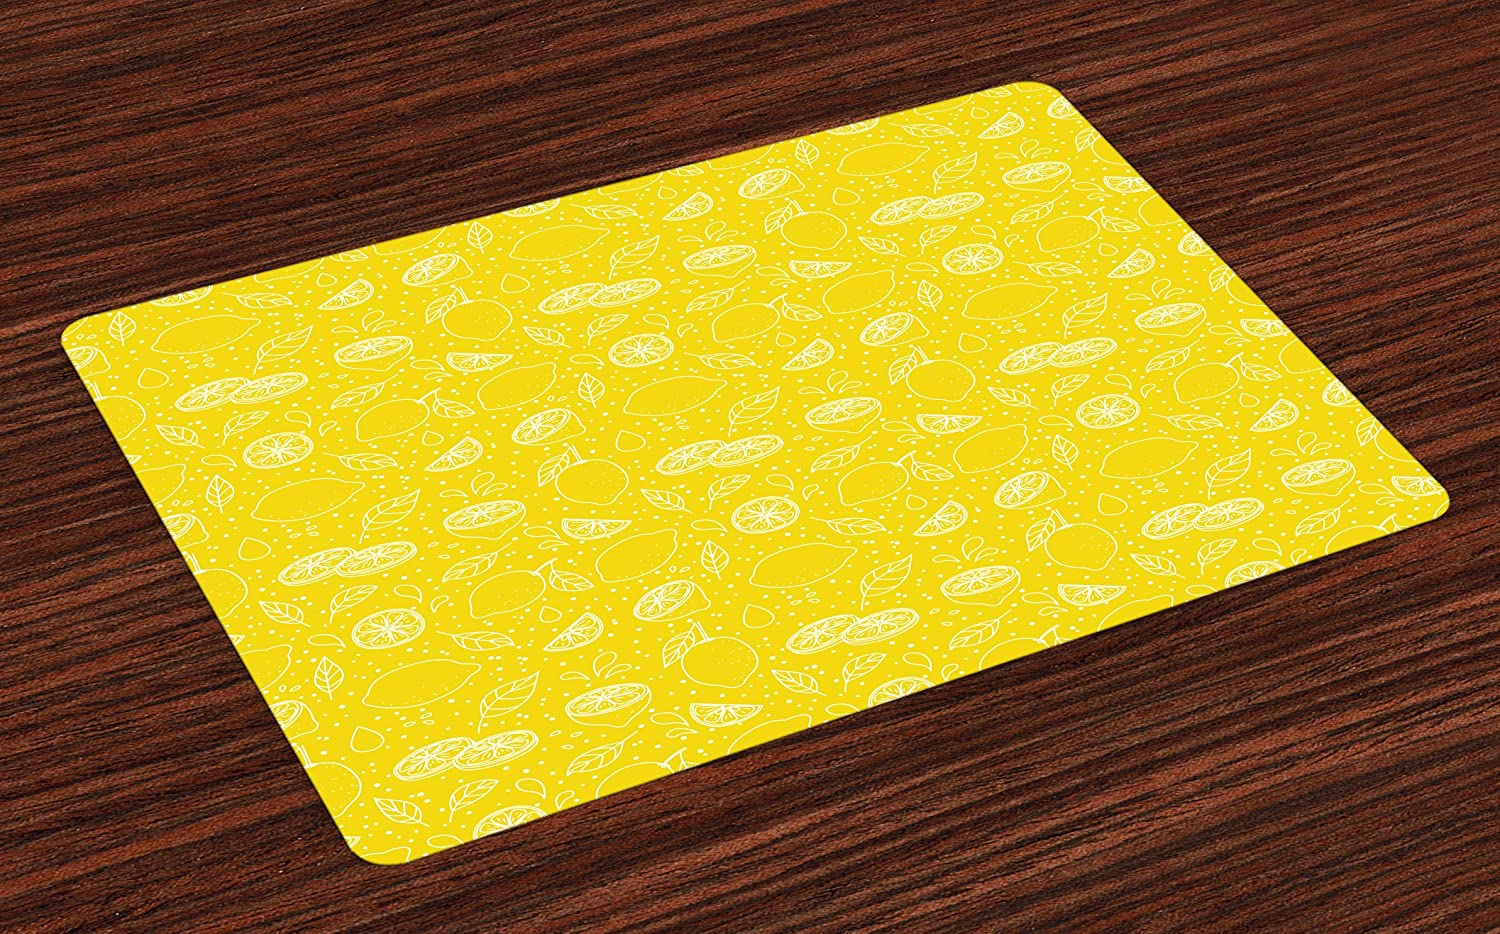 Ambesonne Yellow and White Place Mats Set of 4, Lemons Leaves and Water Droplets Design Monochrome Fruit Illustration, Washable Fabric Placemats for Dining Room Kitchen Table Decor, Yellow White